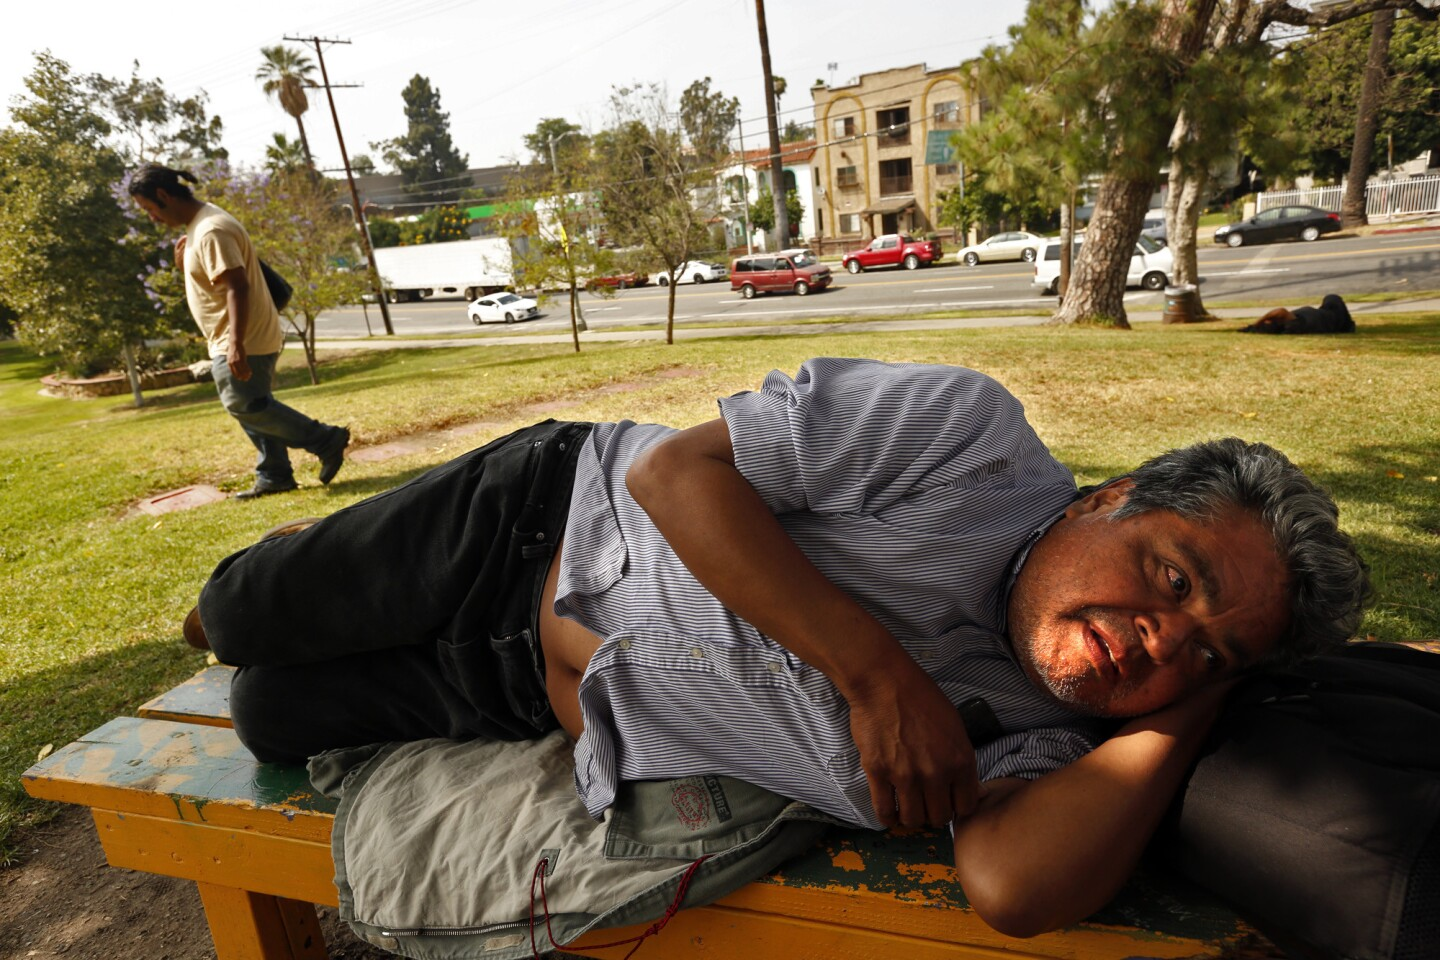 """Timoteo Arevalos, 55, rests in Hollenbeck Park in Boyle Heights, June 6. Arevalos, who has been homeless for a few months, spends his days in the park. """"I feel safe. This is home,"""" he said."""